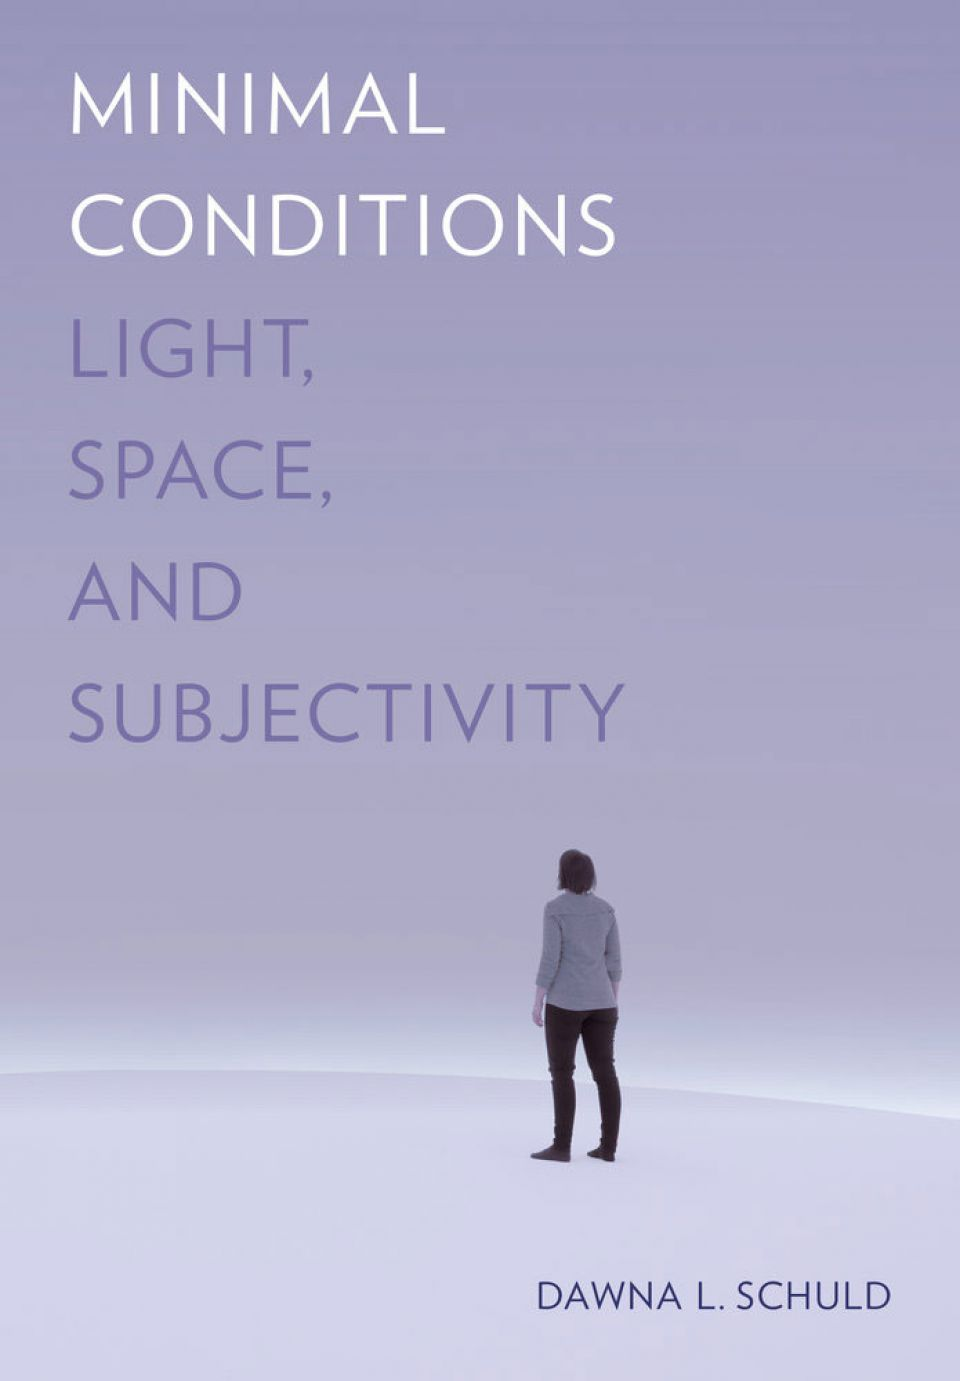 Minimal Conditions: Light, Space, and Subjectivity (2018)